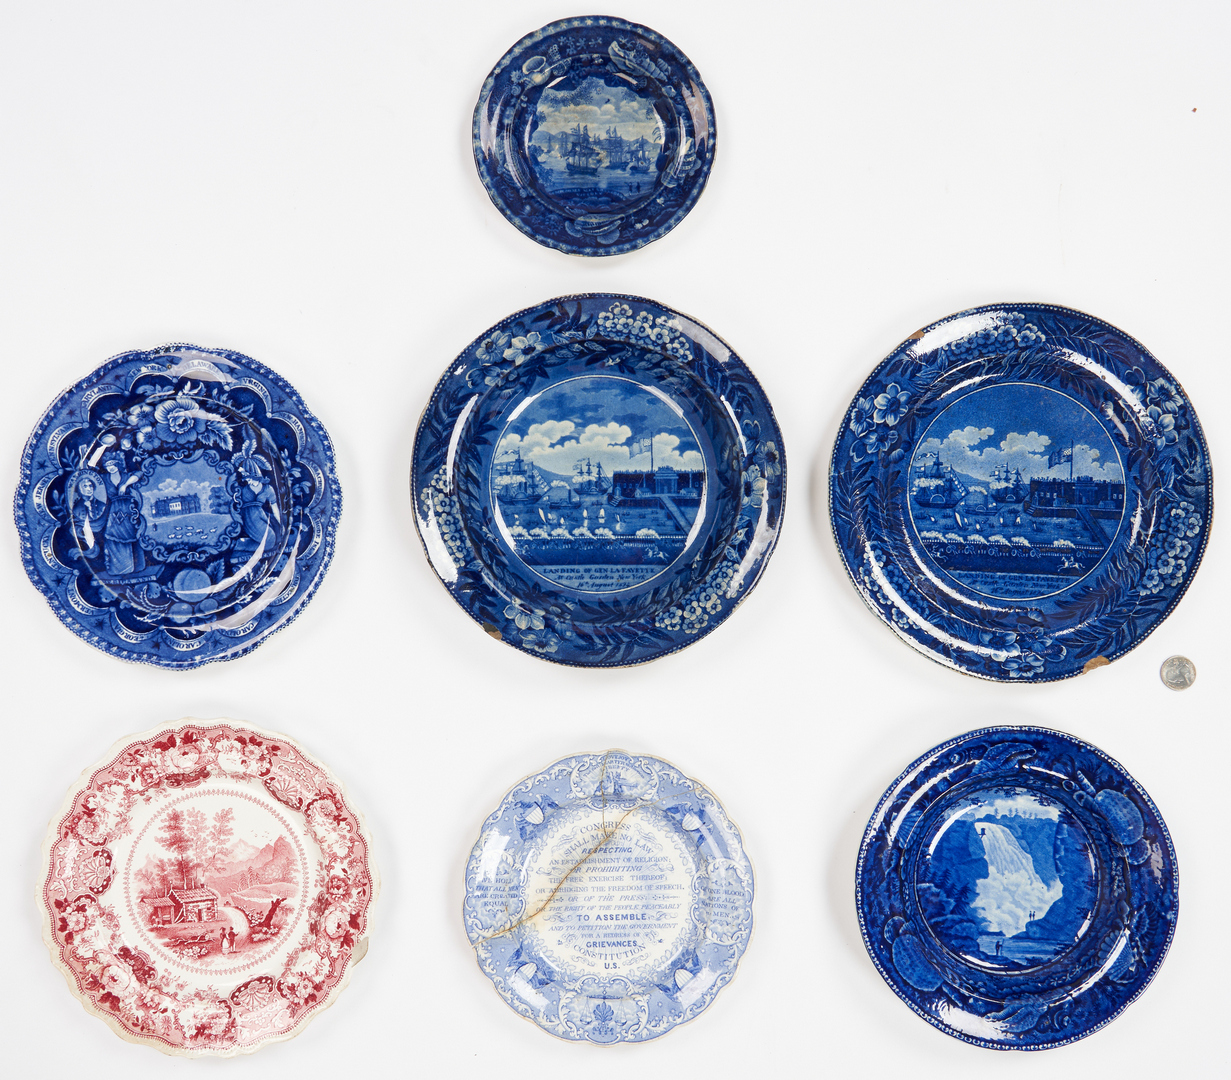 Lot 273: 7 pcs. Historical Staffordshire incl. Slavery Related